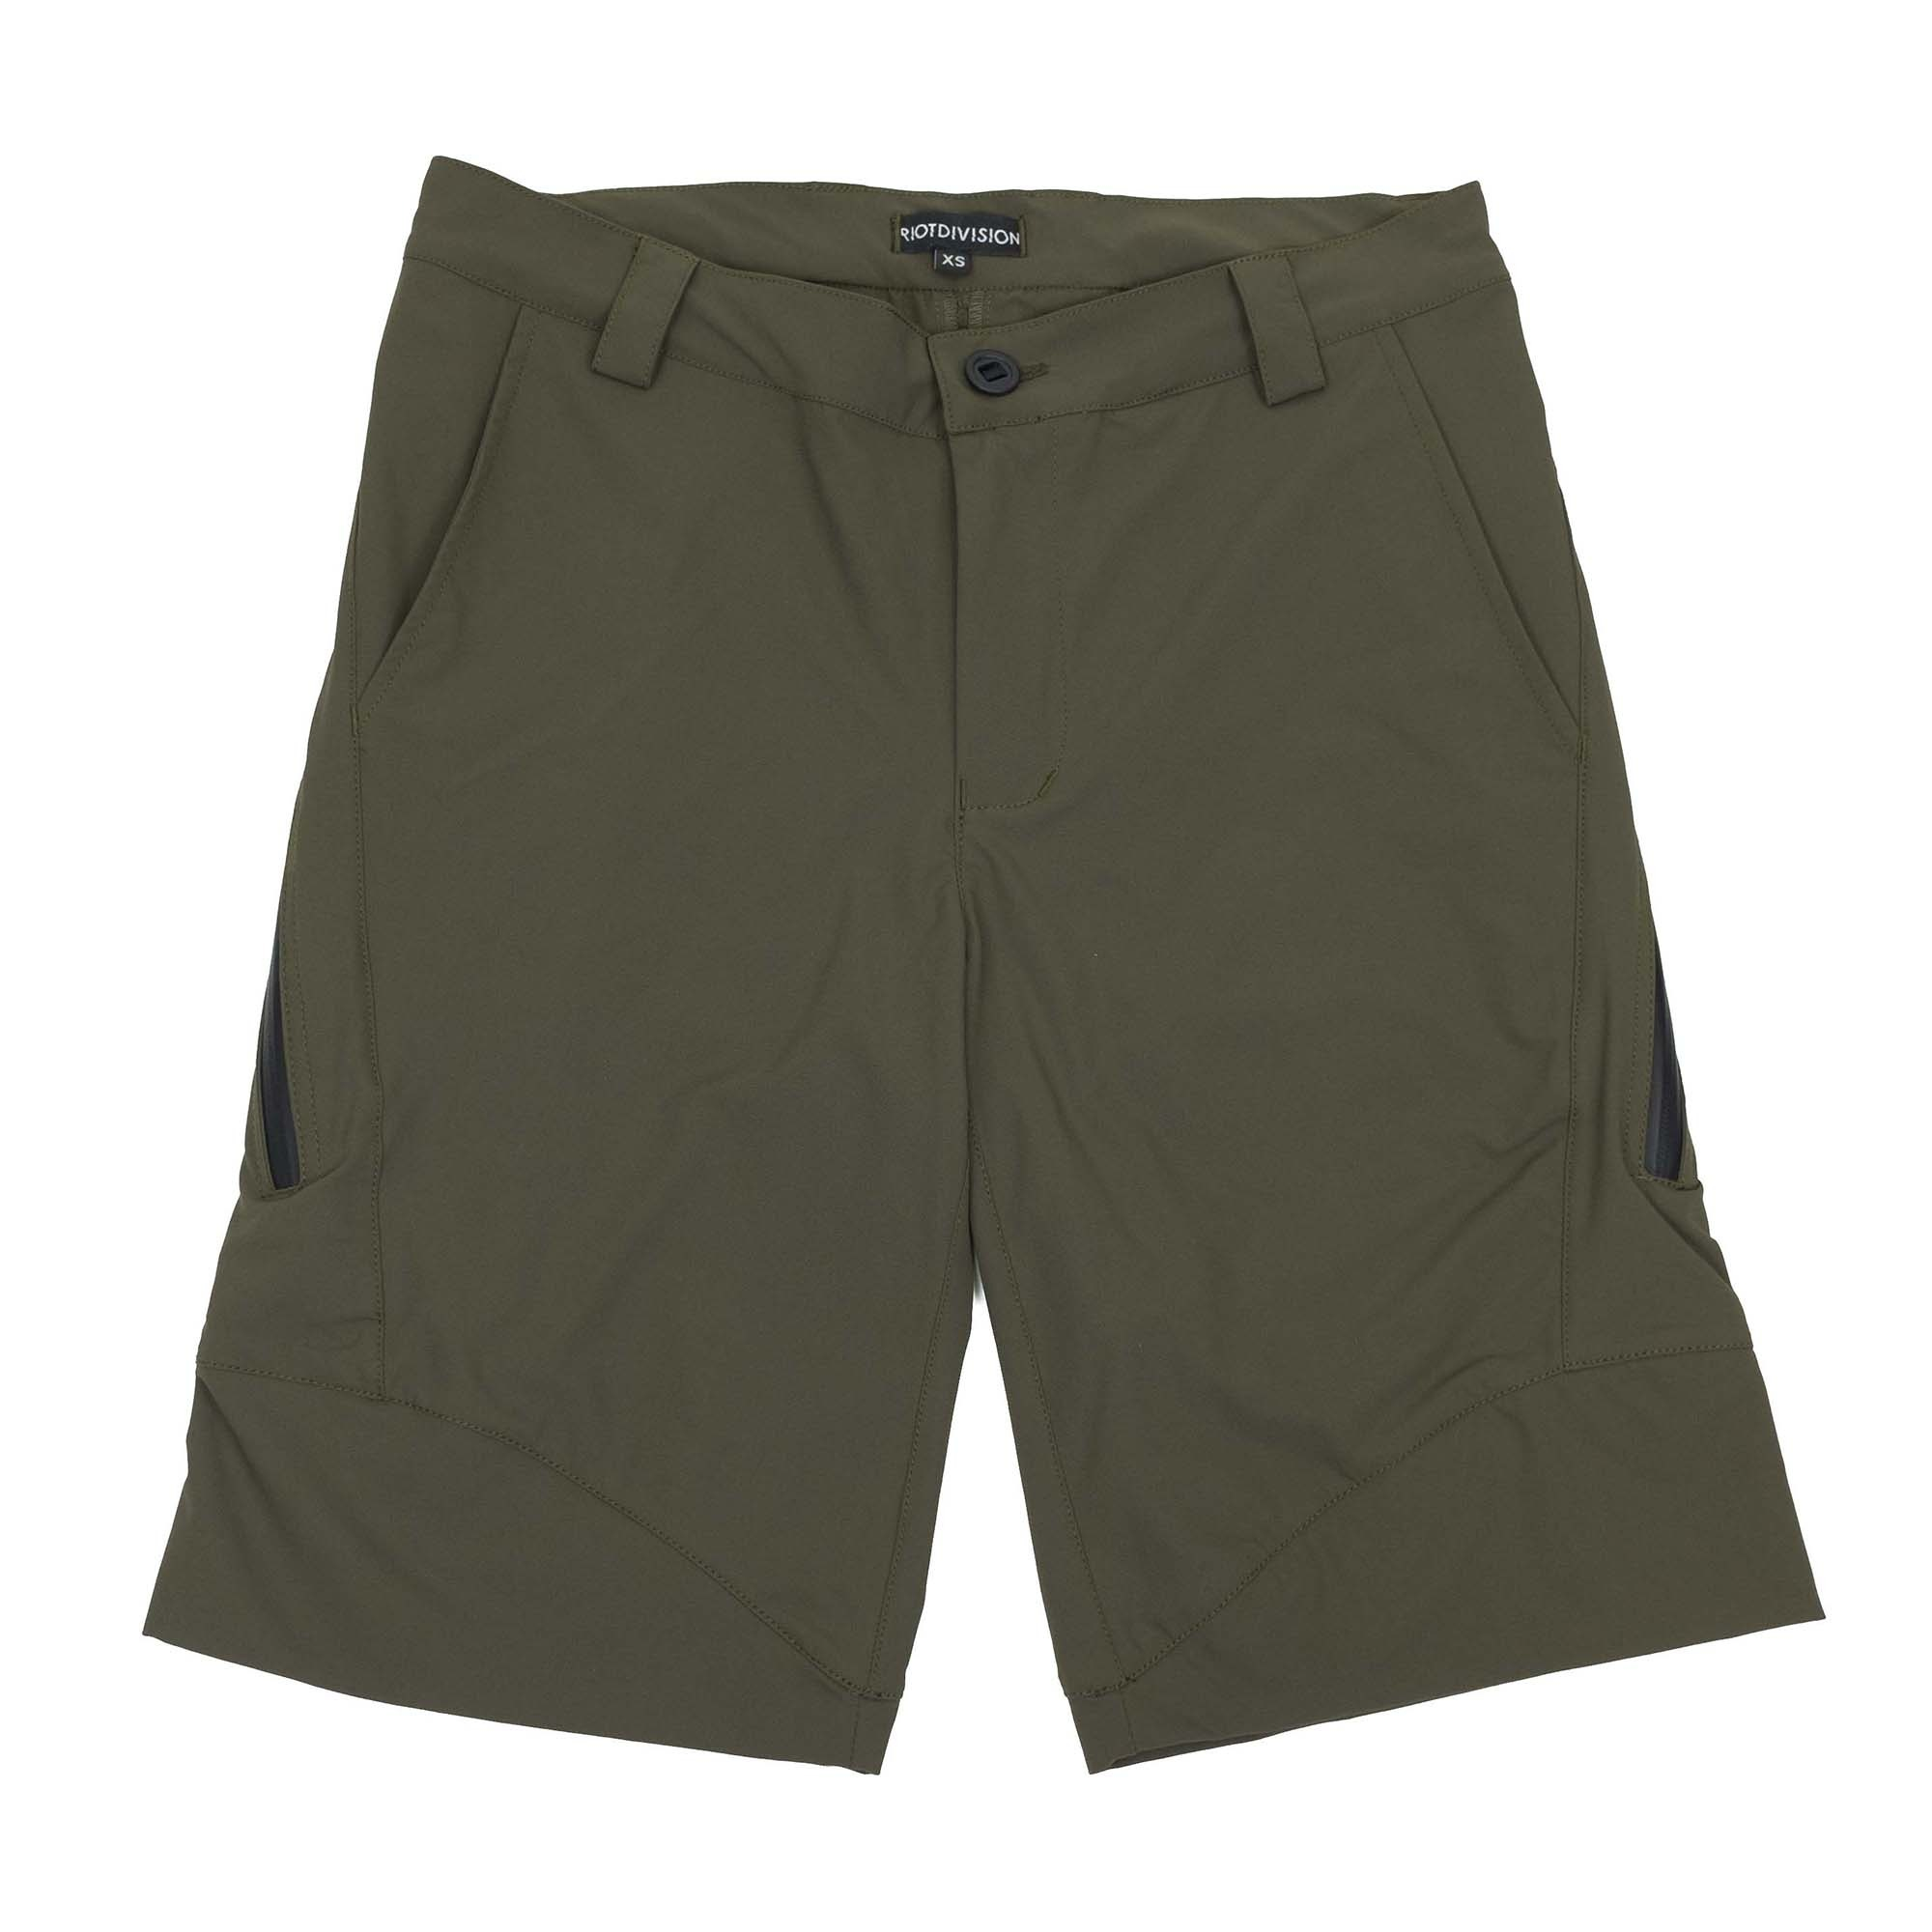 Riot Division Concealed Shorts - Khaki